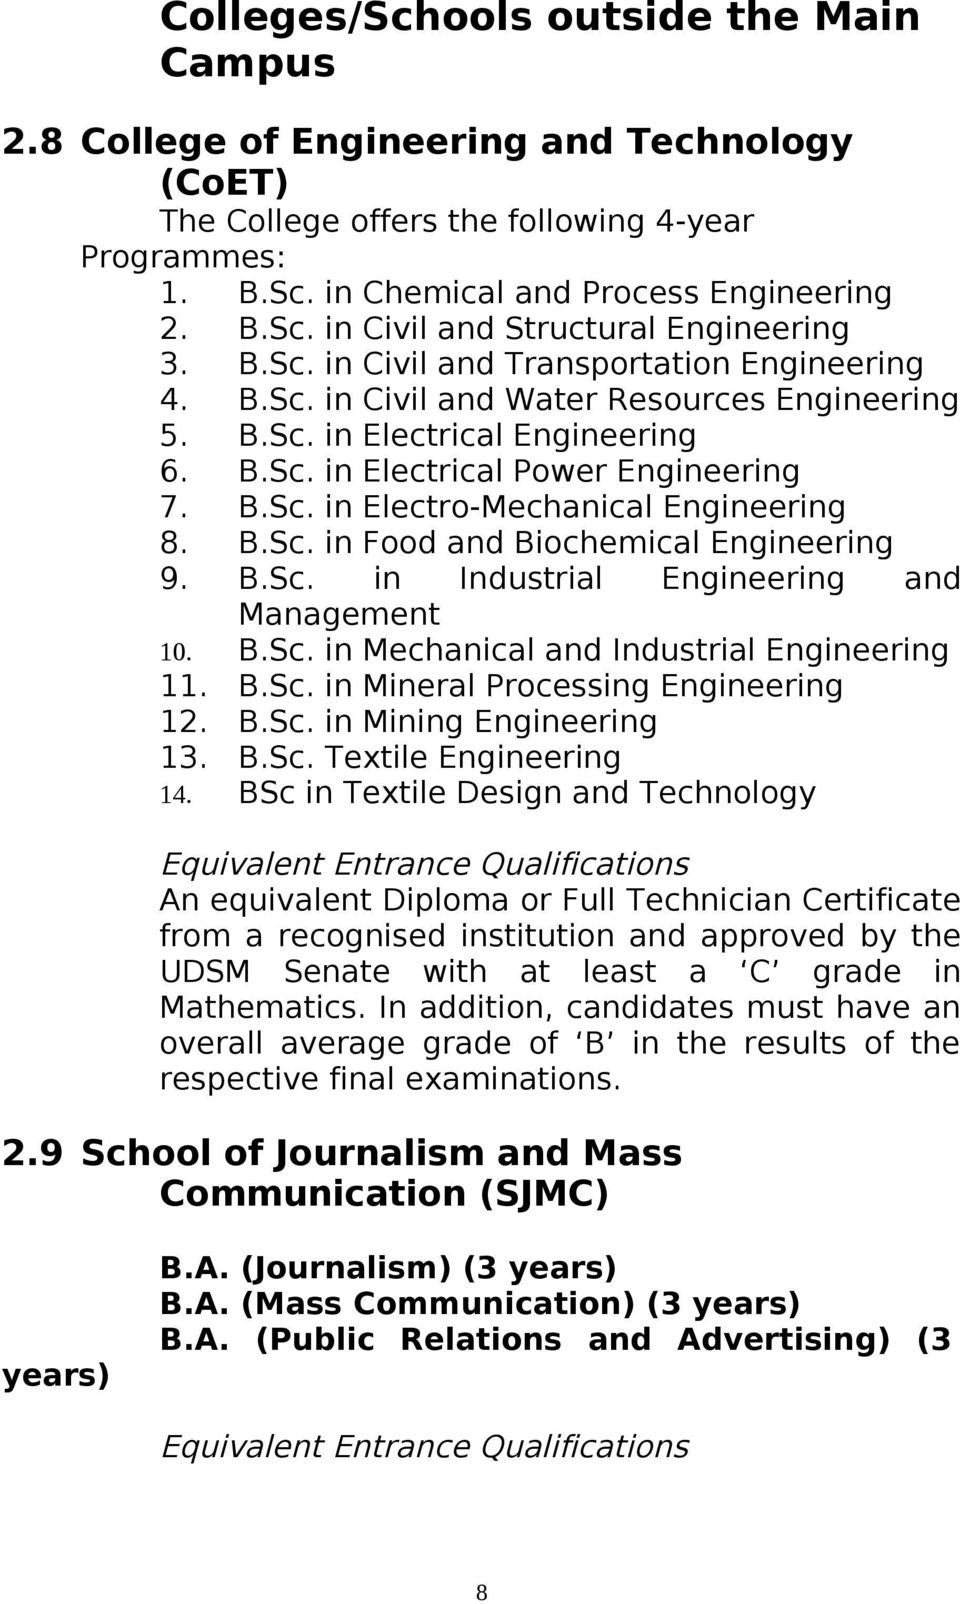 B.Sc. in Food and Biochemical Engineering 9. B.Sc. in Industrial Engineering and Management 10. B.Sc. in Mechanical and Industrial Engineering 11. B.Sc. in Mineral Processing Engineering 12. B.Sc. in Mining Engineering 13.